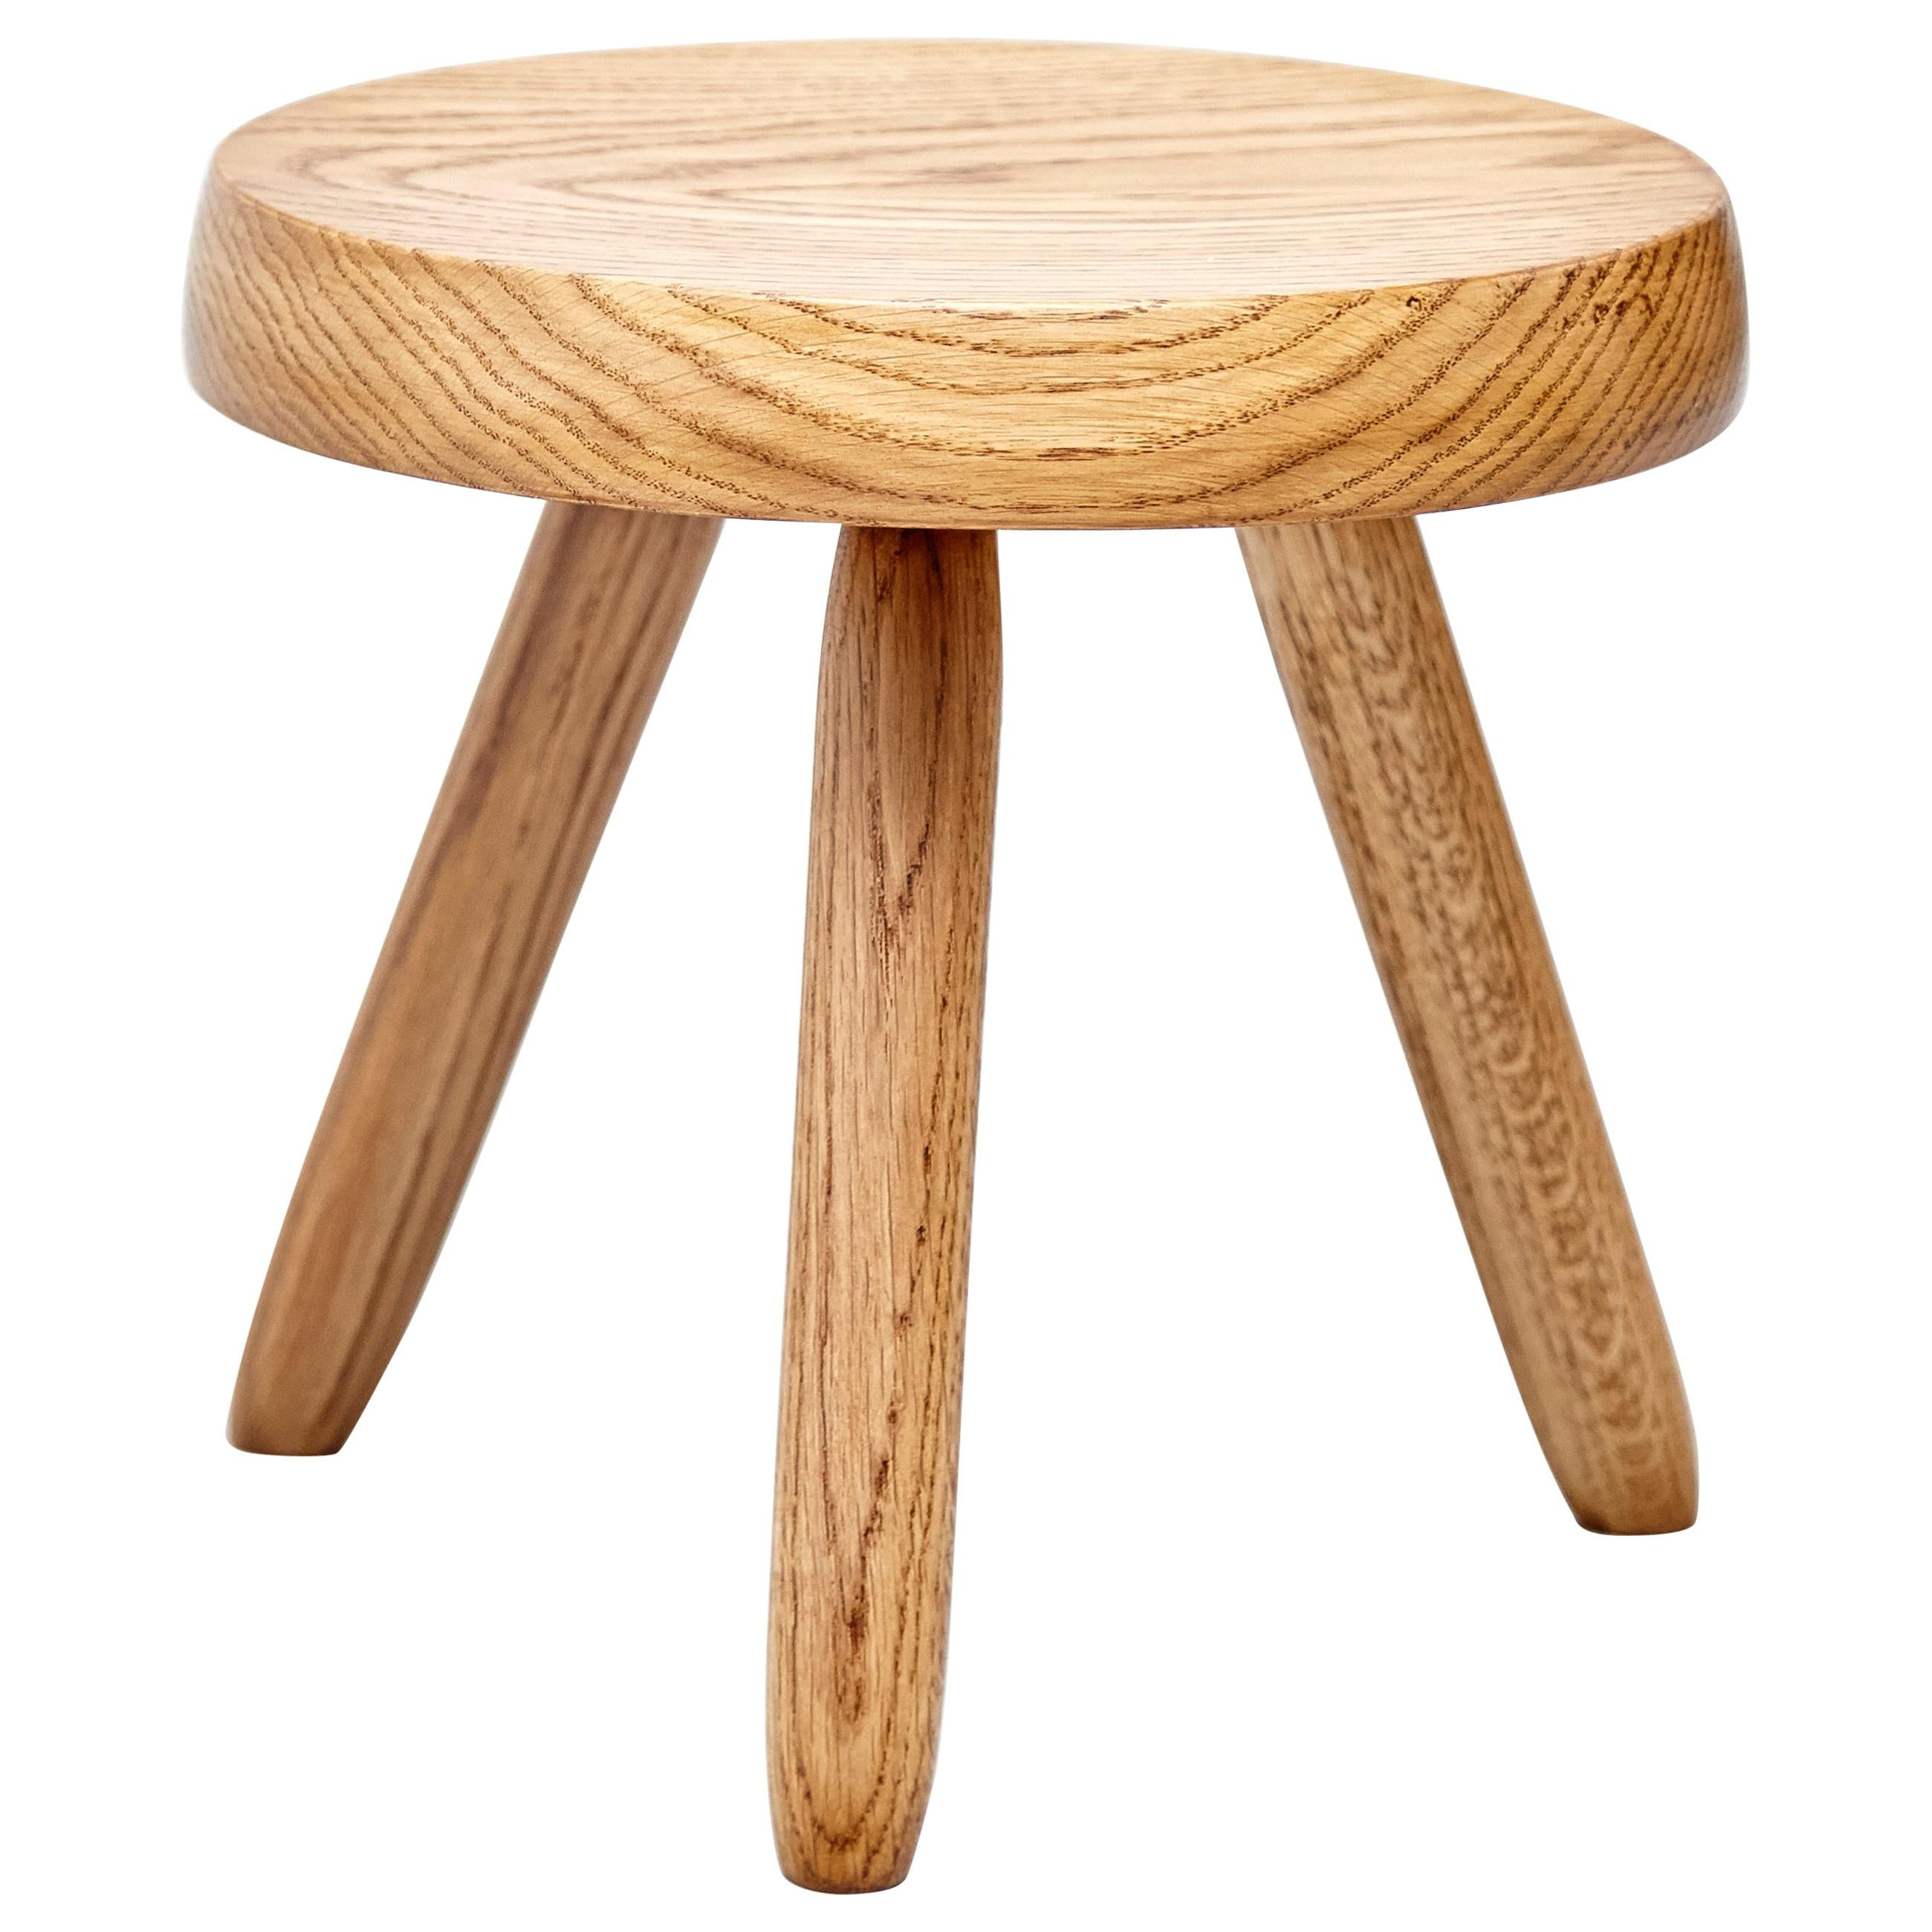 Stupendous After Charlotte Perriand Mid Century Modern Wood Stool Camellatalisay Diy Chair Ideas Camellatalisaycom